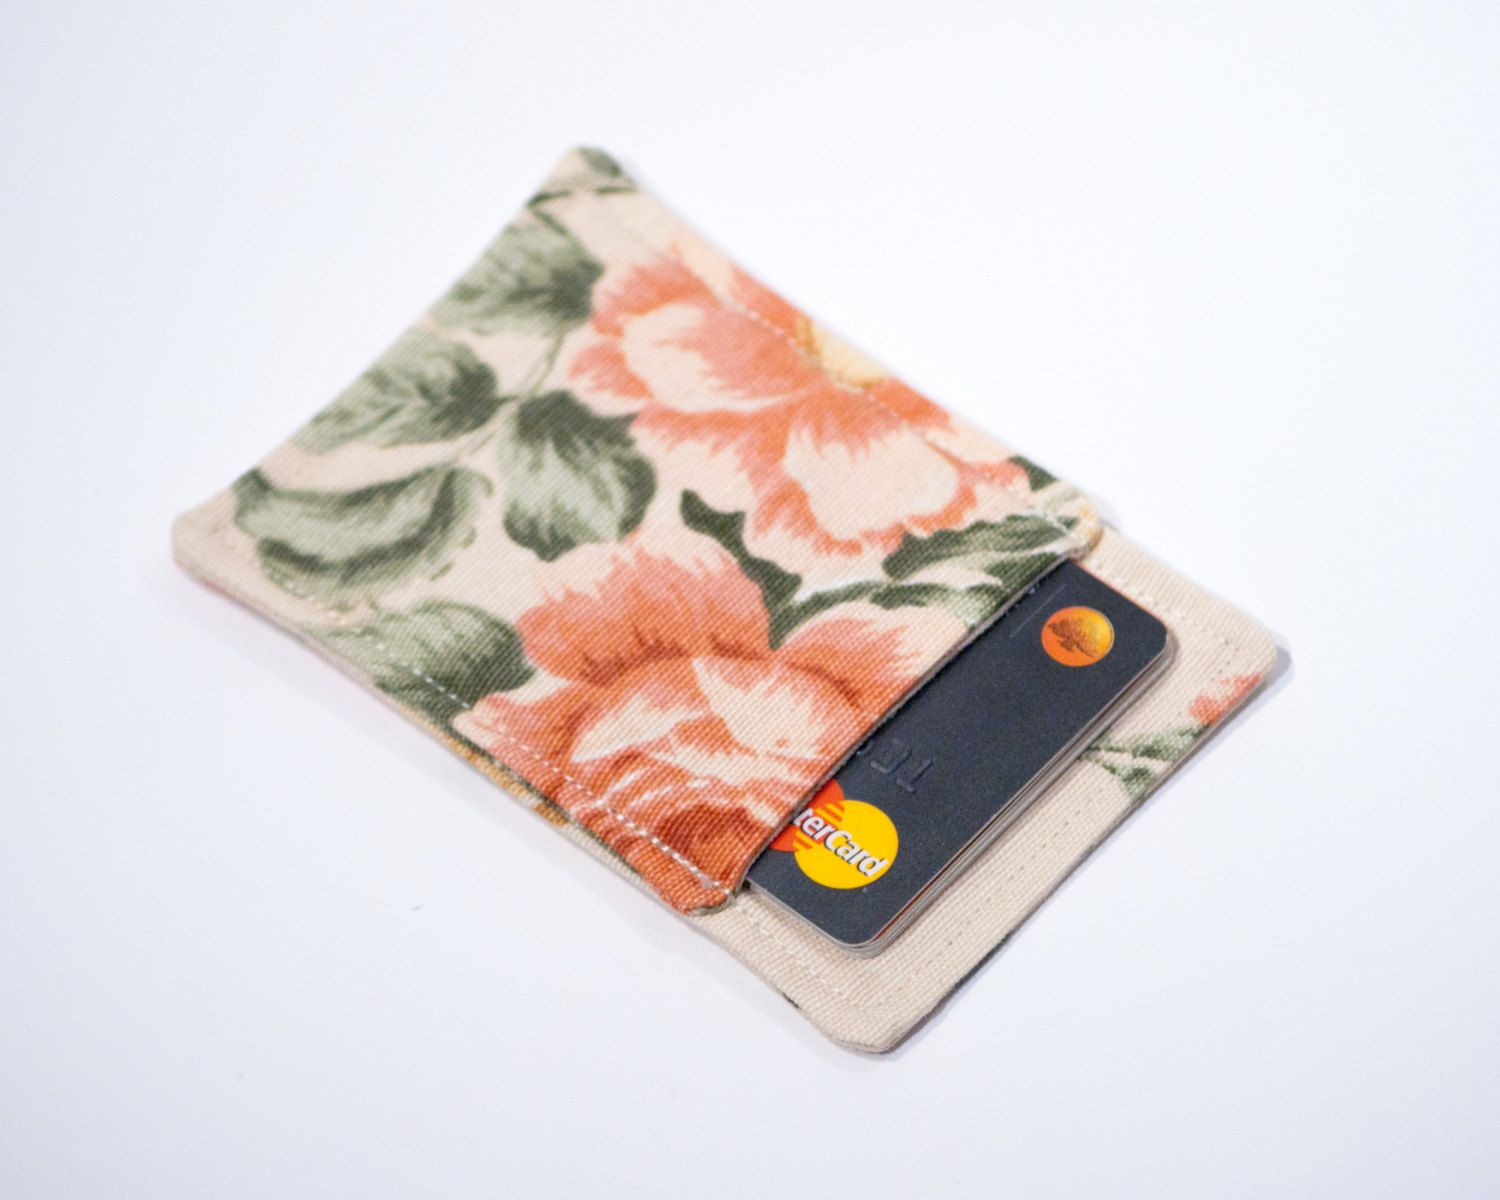 Floral fabric credit card wallet - Minimalist wallet - Slim ...